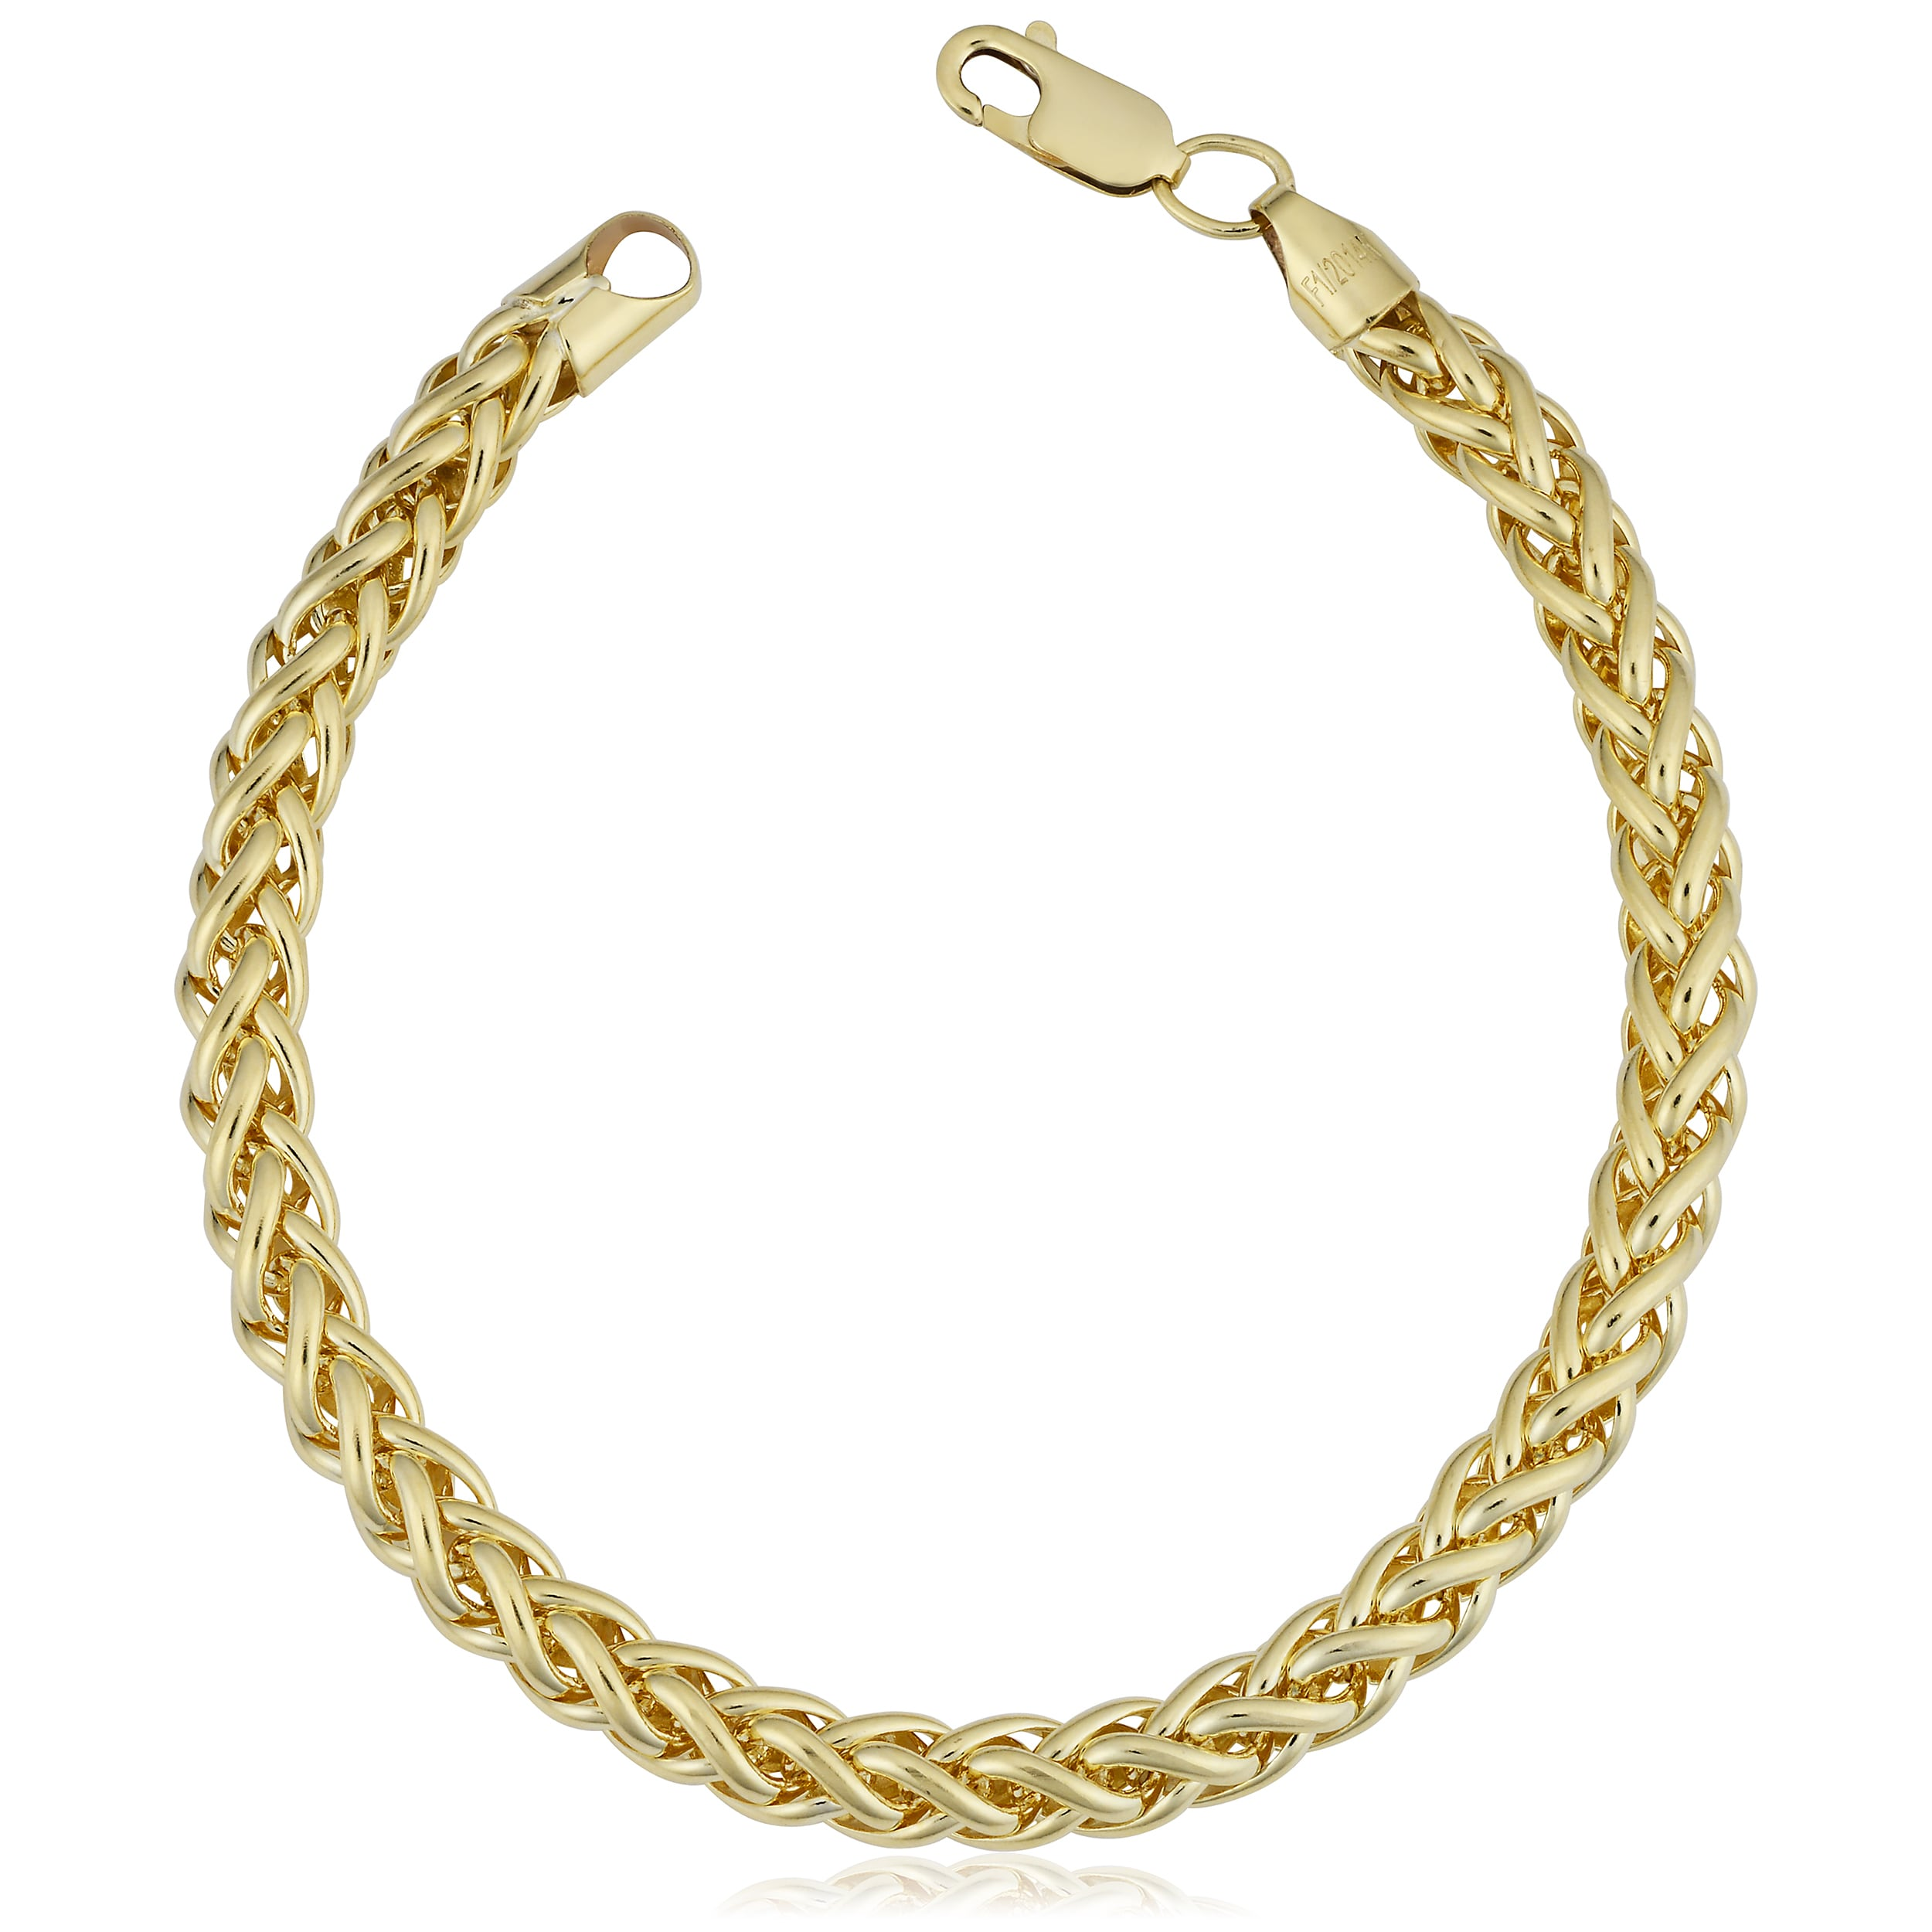 bd425a1d83e 14k Yellow Gold Filled 6-mm Bold Franco Link Chain Bracelet (7.5-8.5 inches)